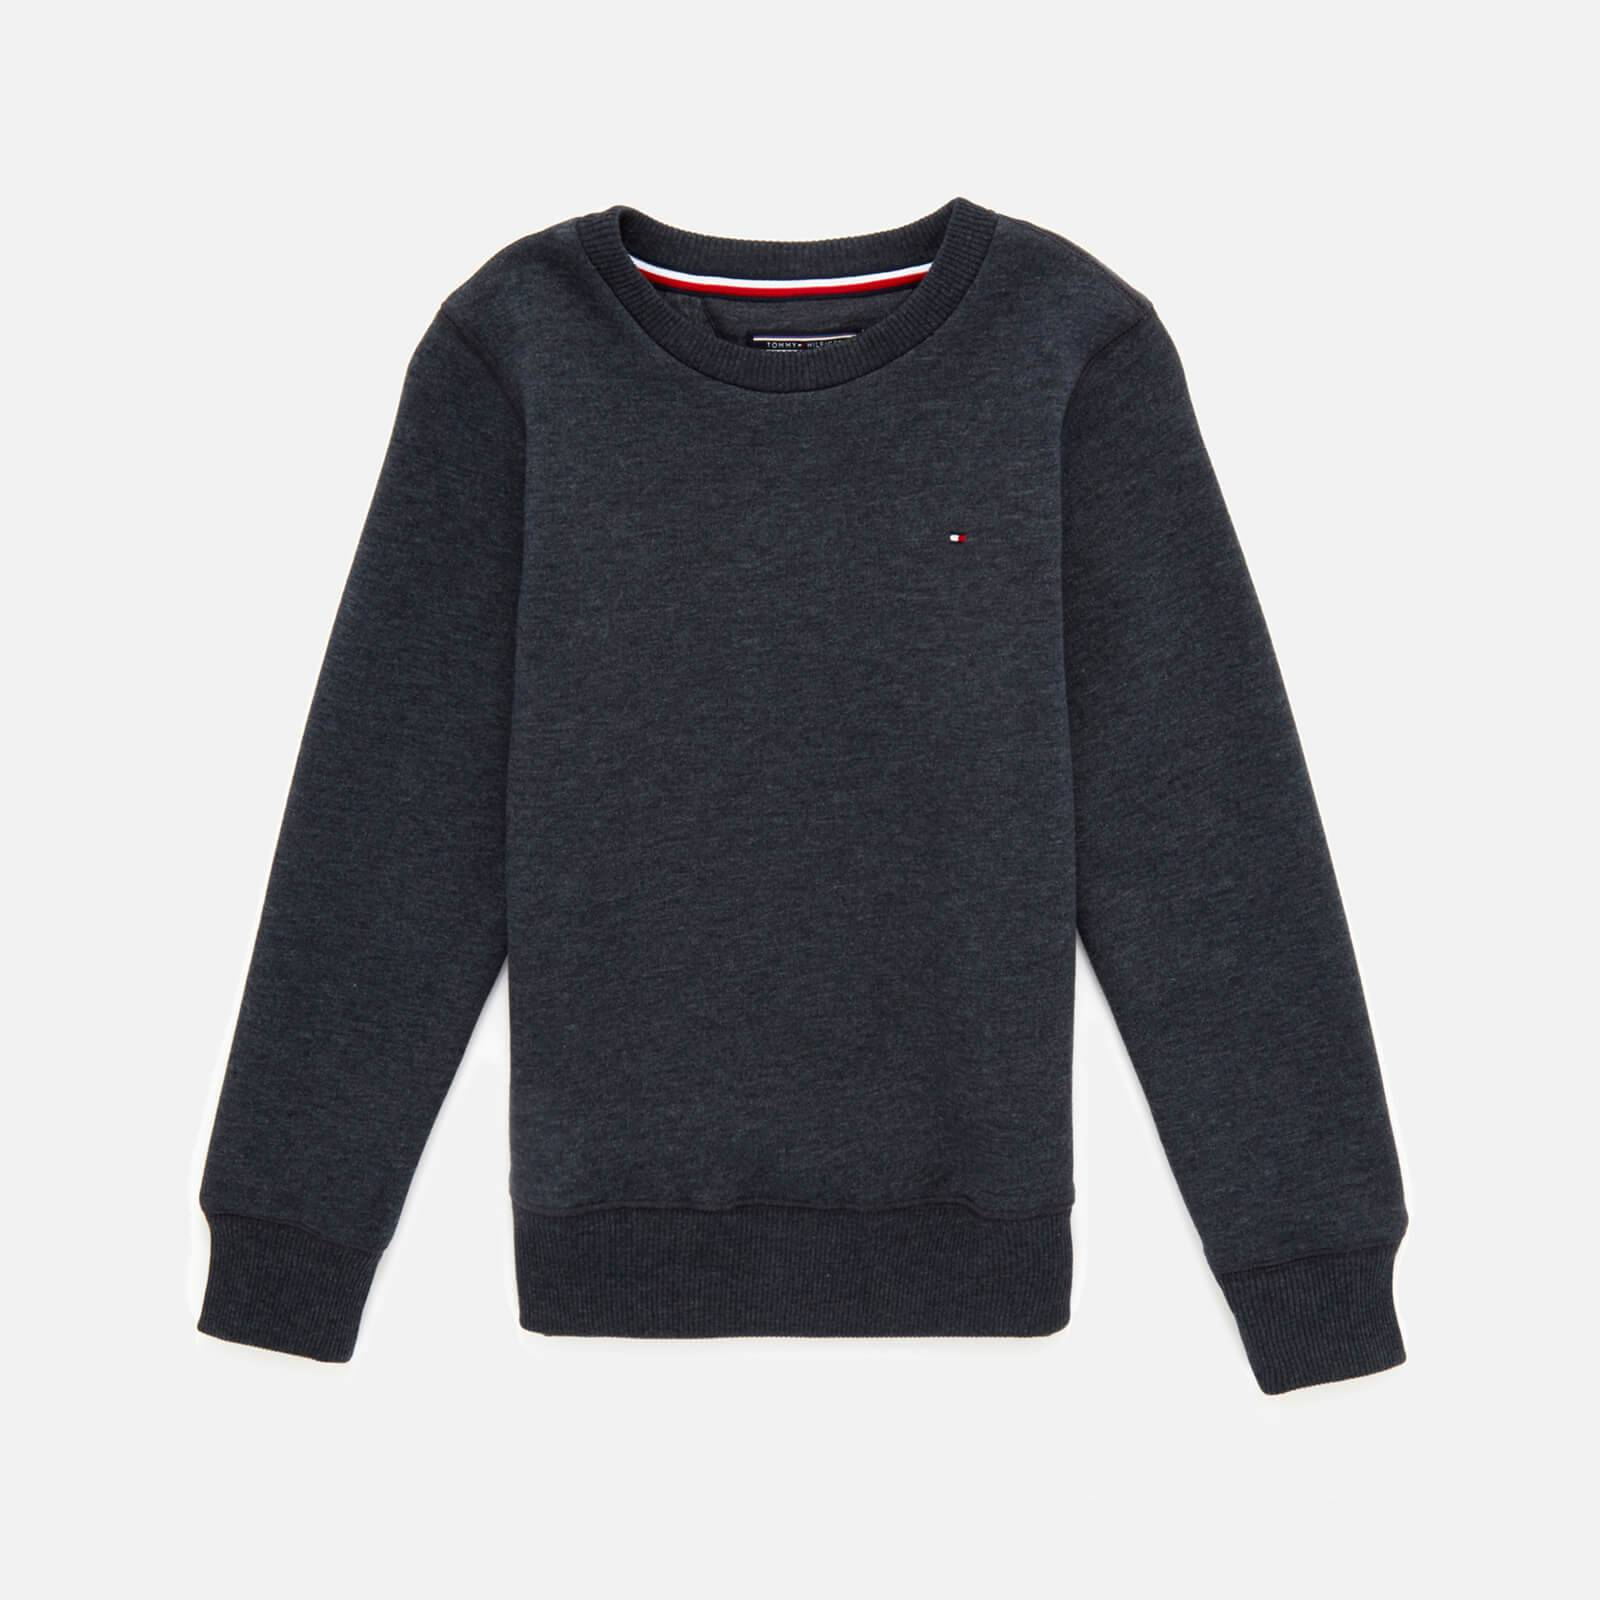 Tommy Kids Boys' Basic Sweatshirt - Sky Captain - 7 Years